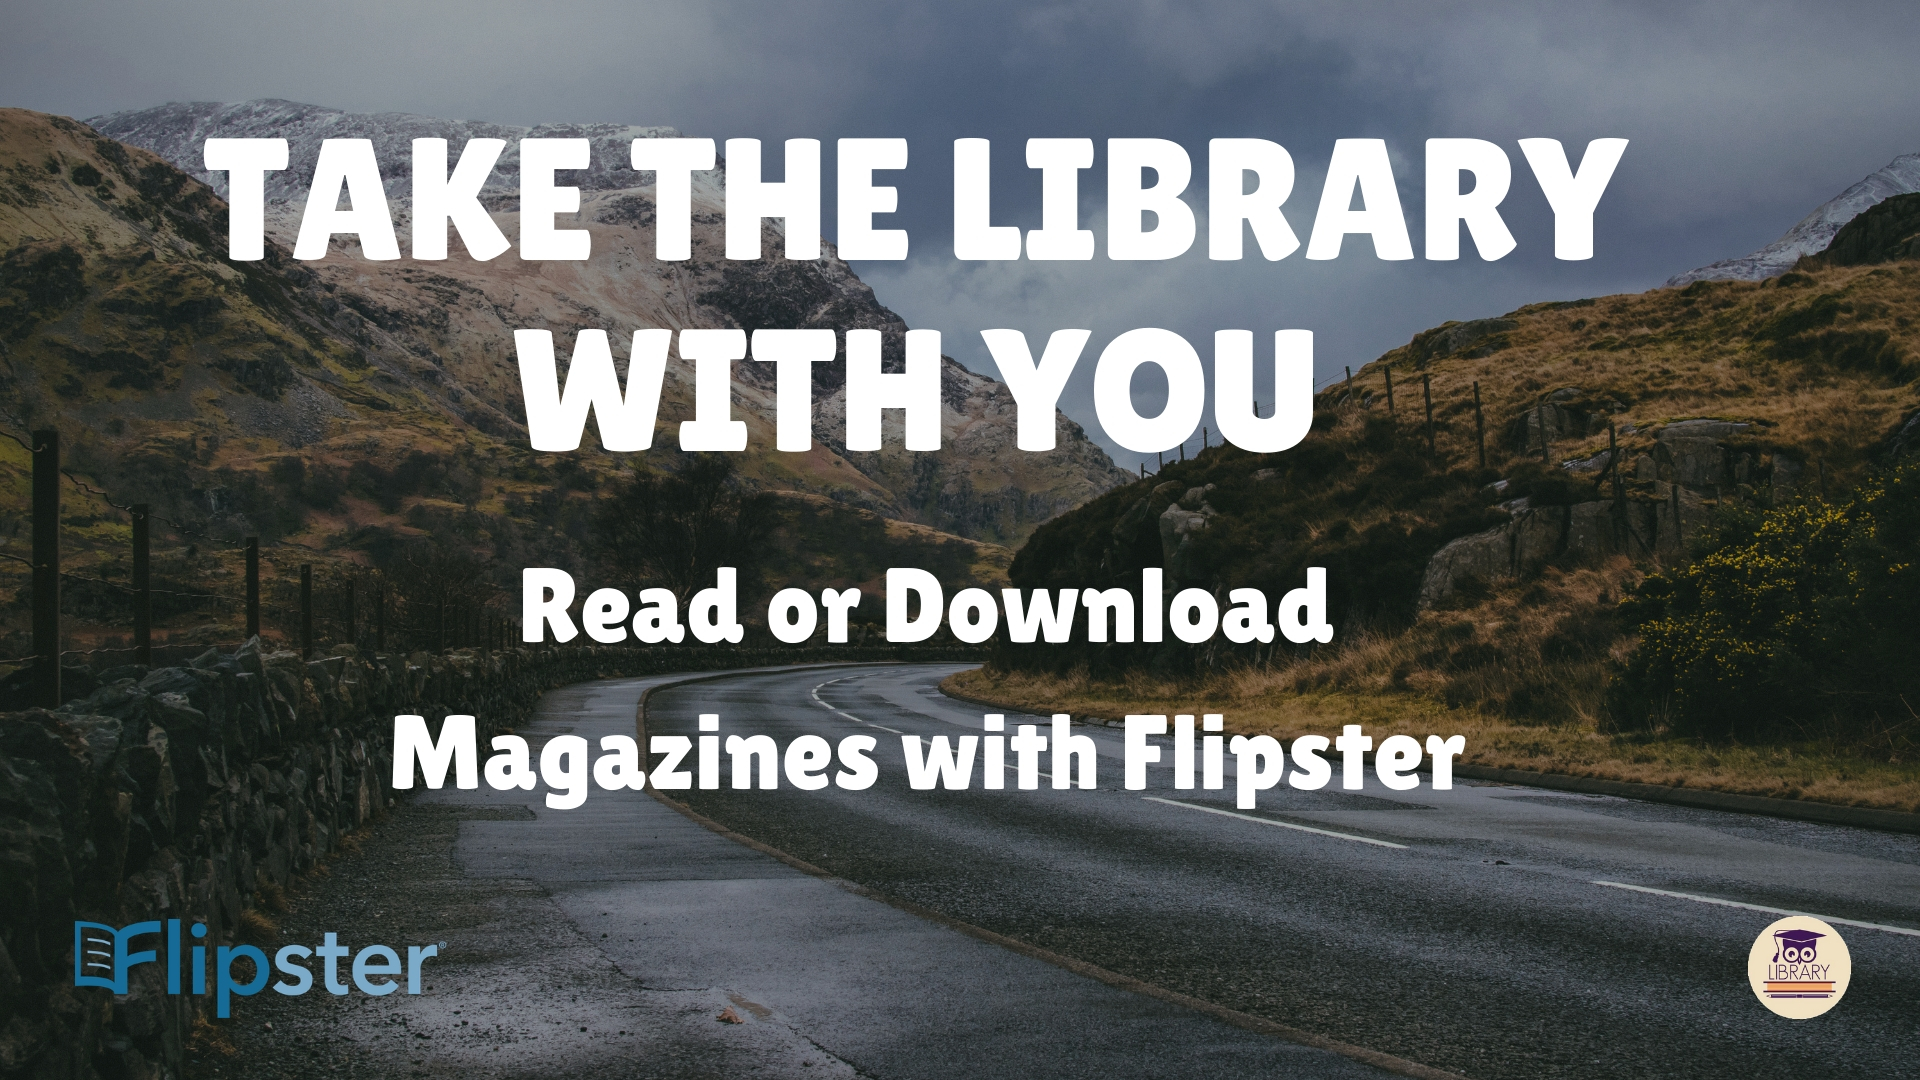 read or downloard magazines and journals with flipster